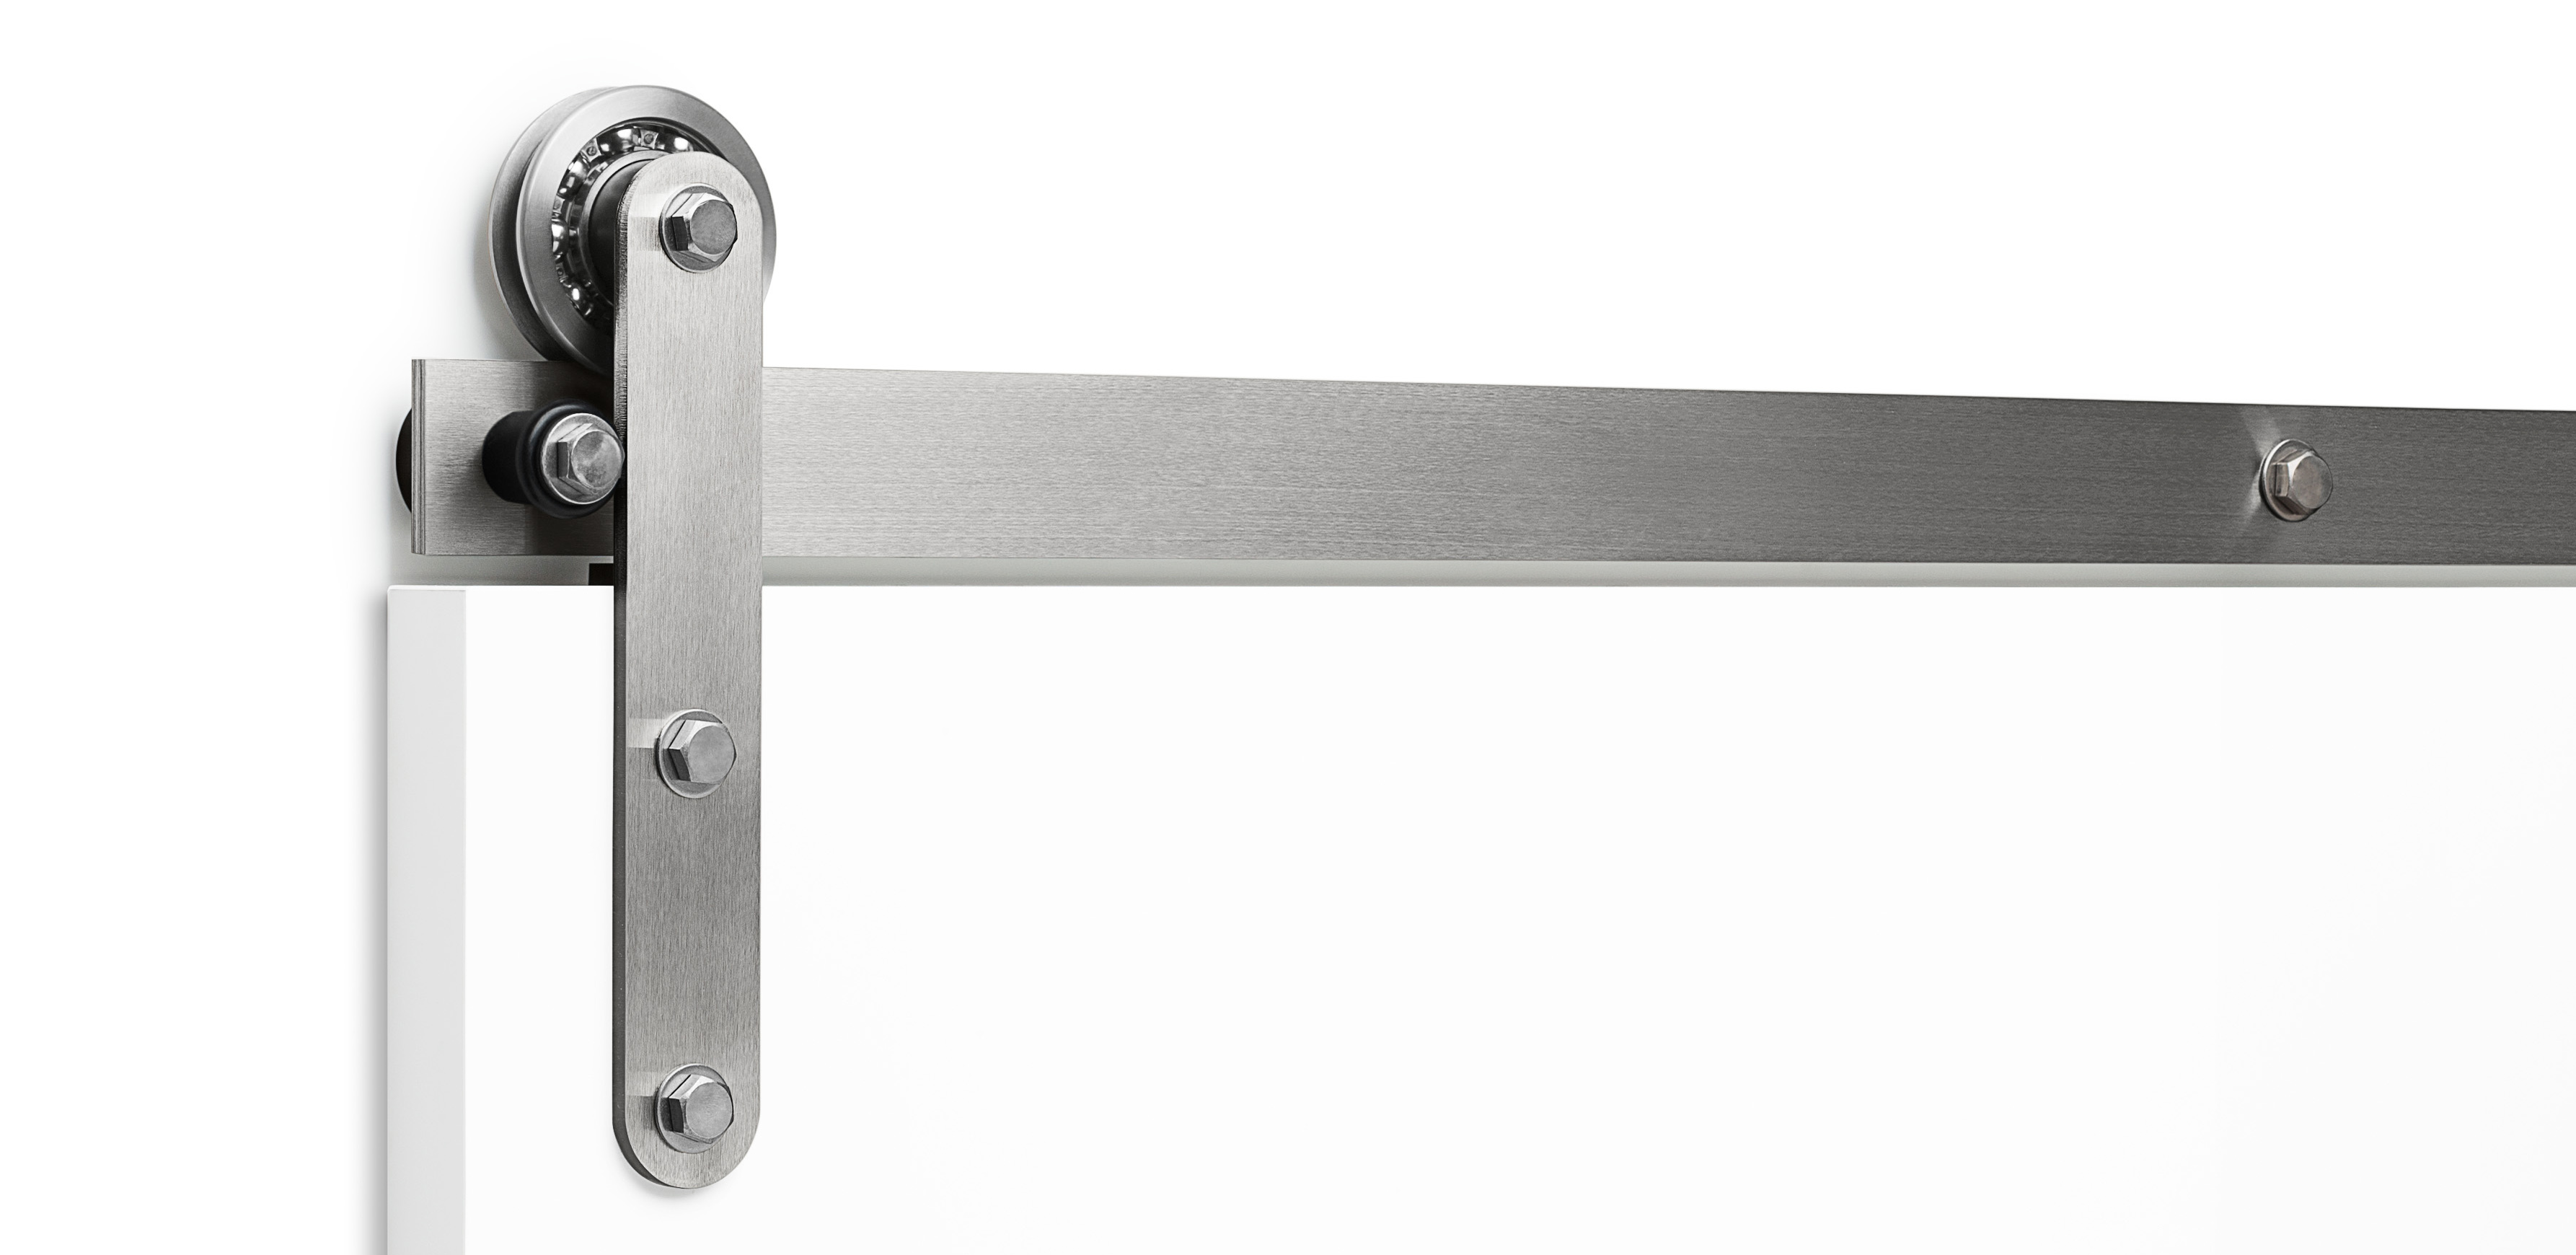 Flat track modern barn door hardware axel by krownlab for Hardware for sliding barn doors flat track